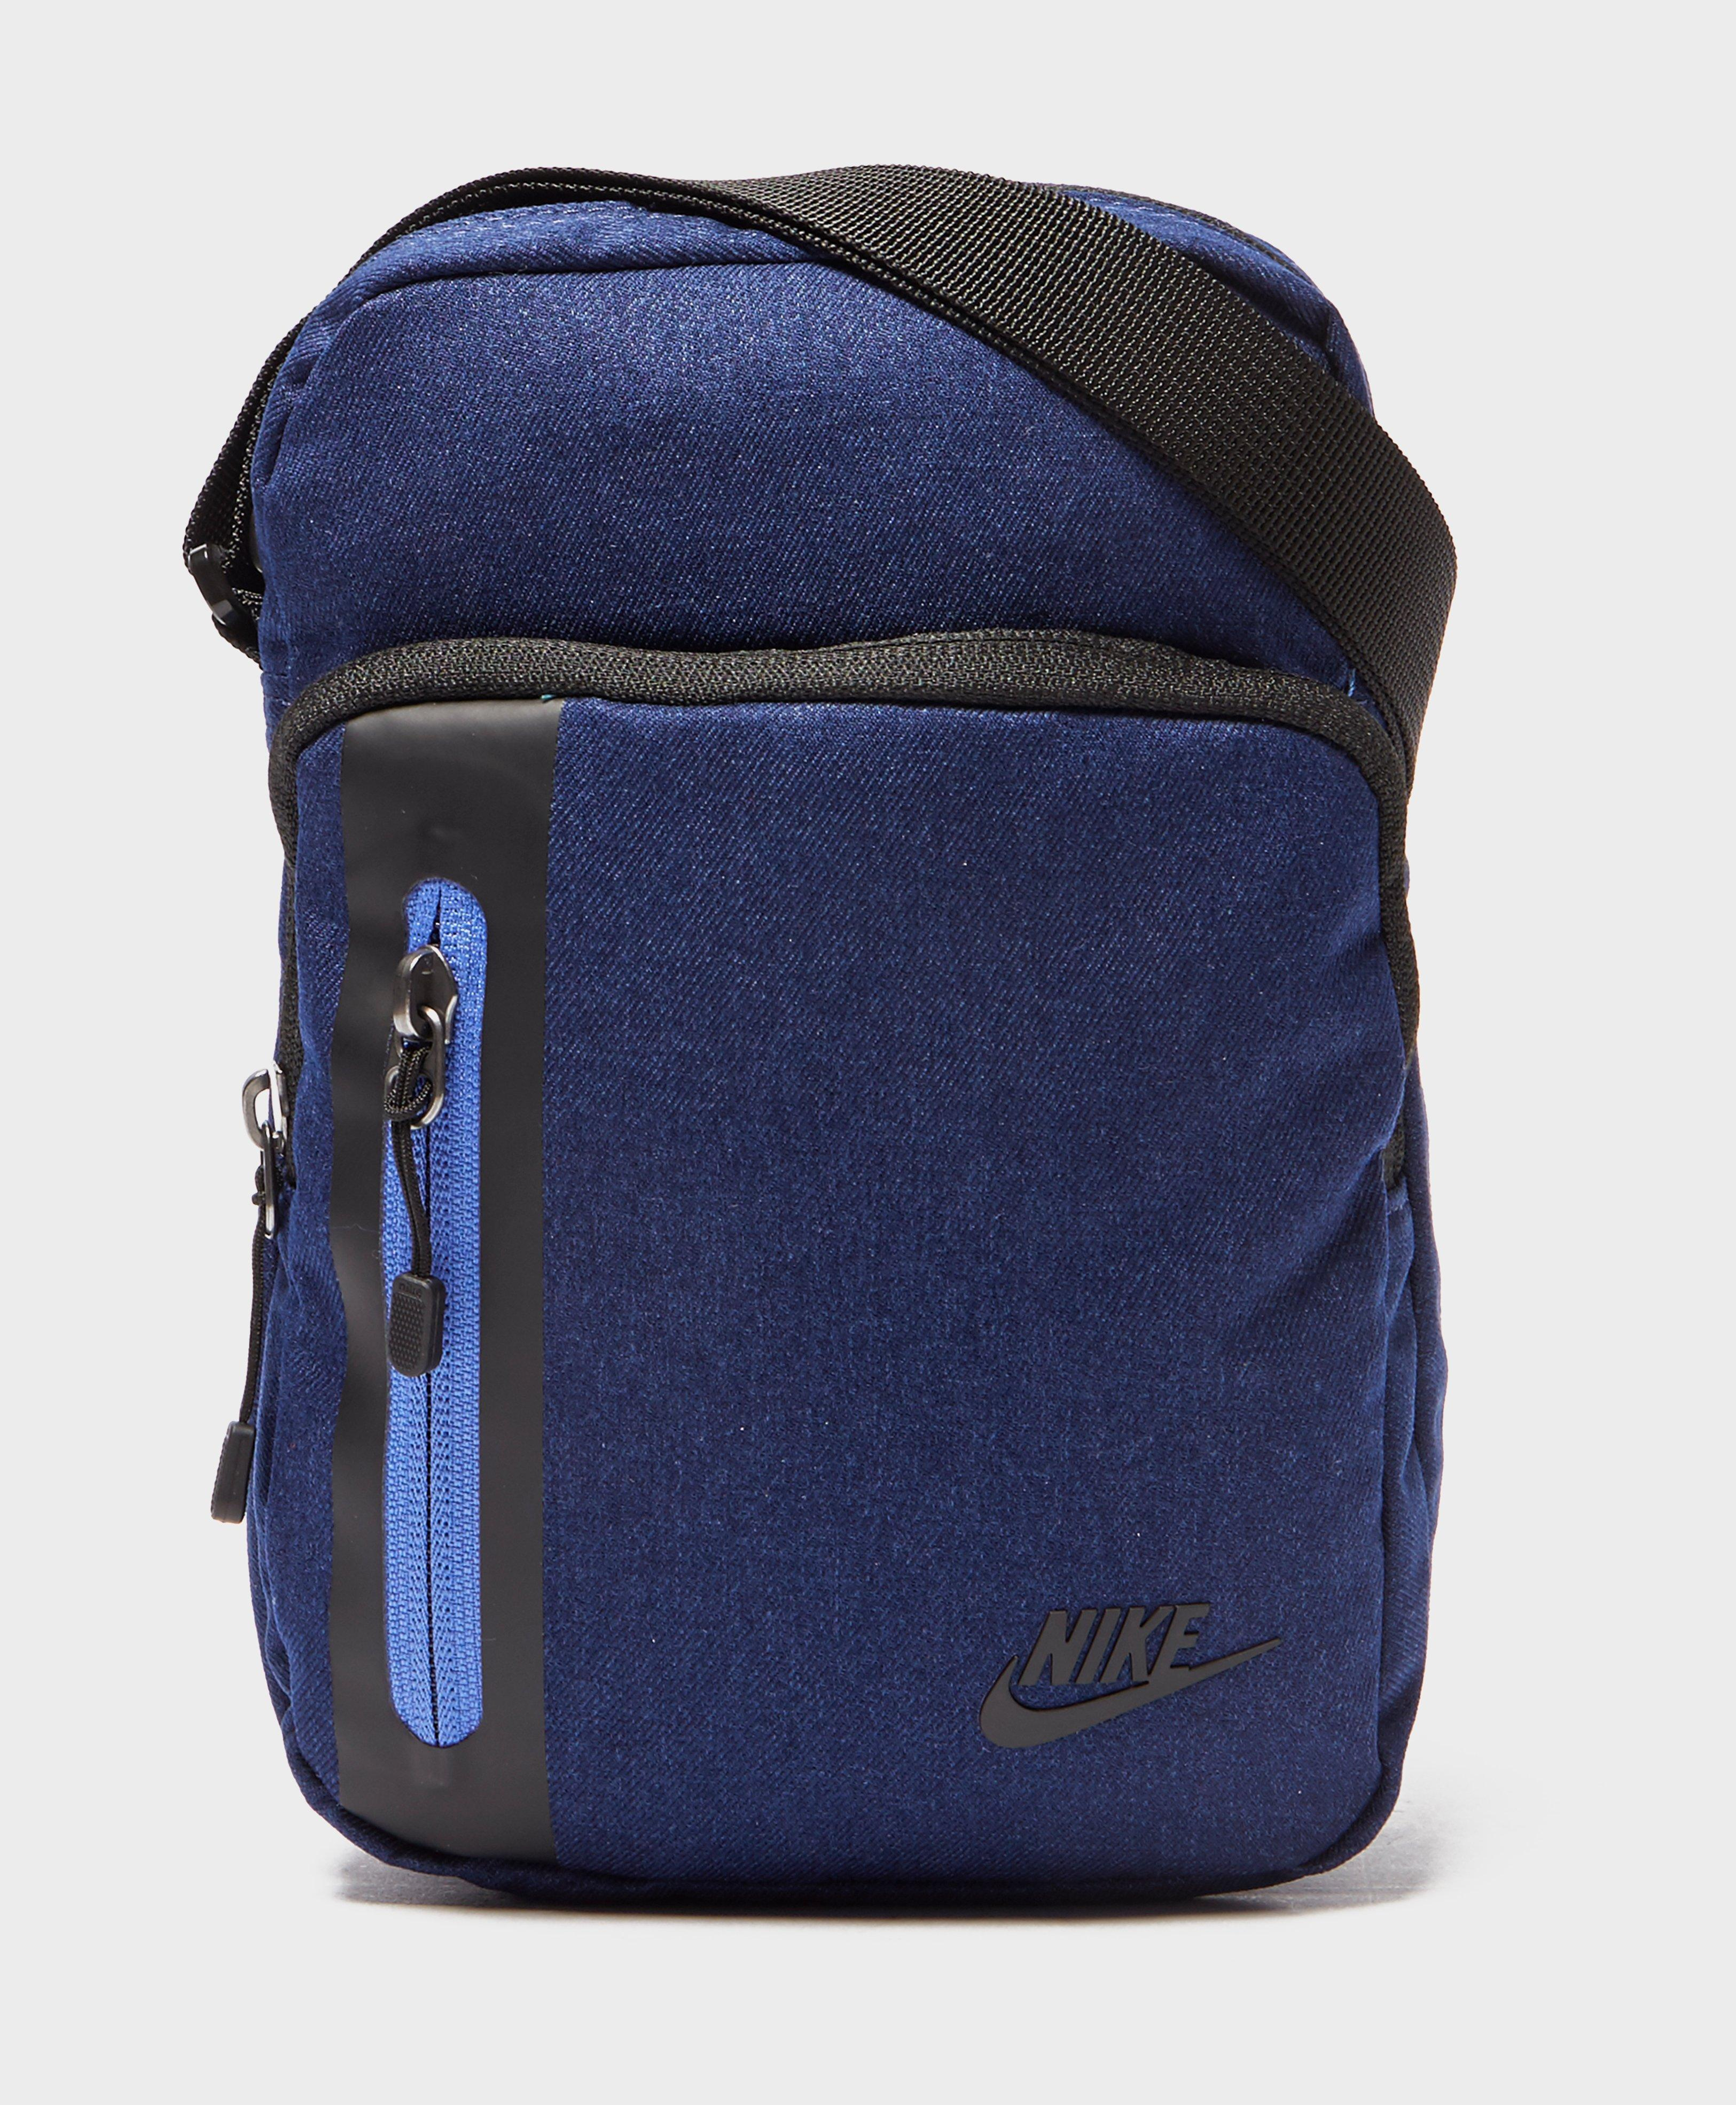 Nike Synthetic Core Small Items 3.0 Bag in Blue for Men - Lyst